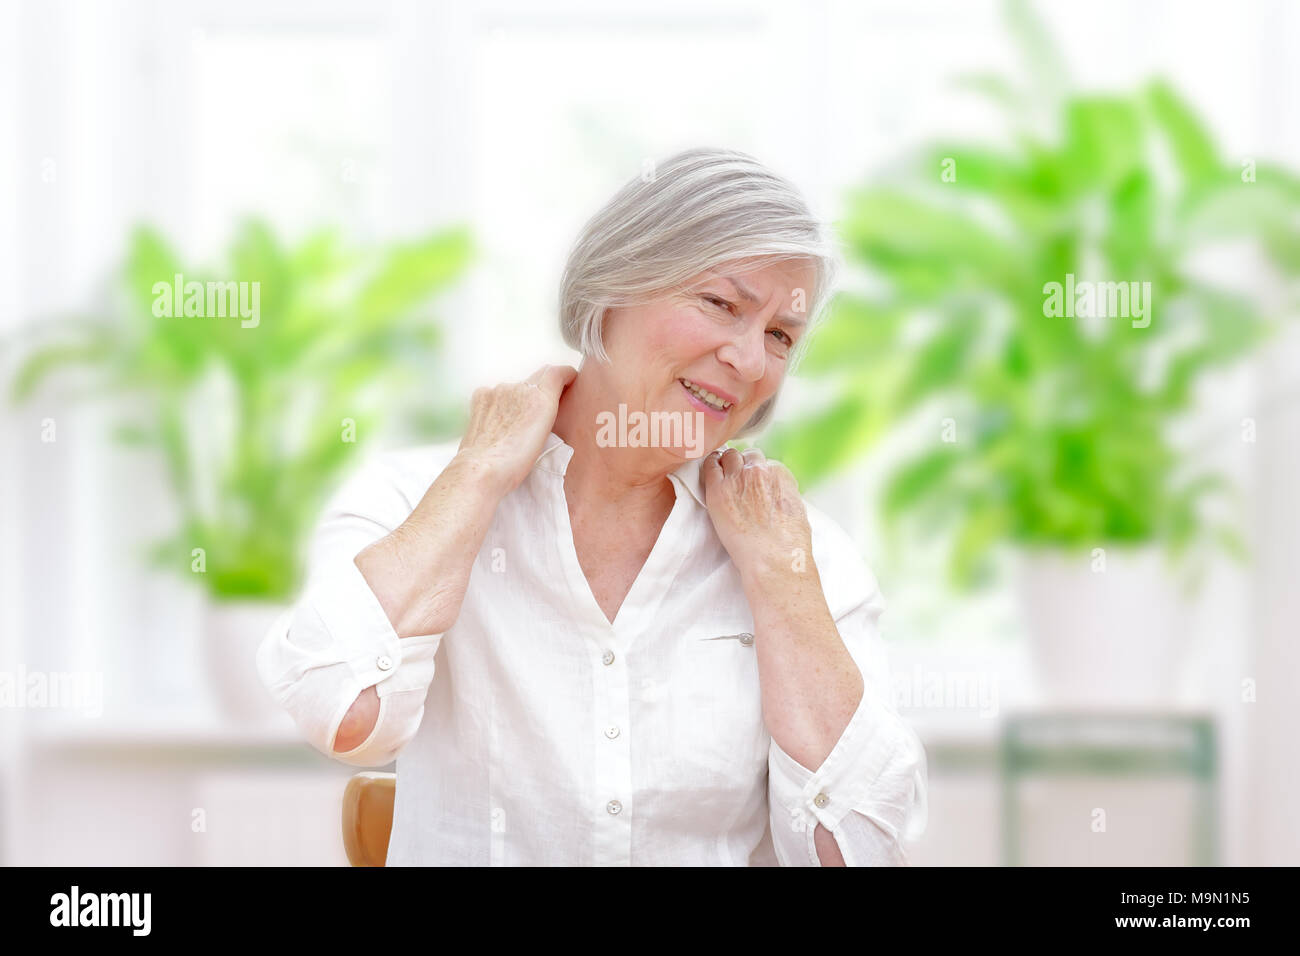 Elderly woman with chronic pain syndrome fibromyalgia suffering from acute shoulder pain - Stock Image